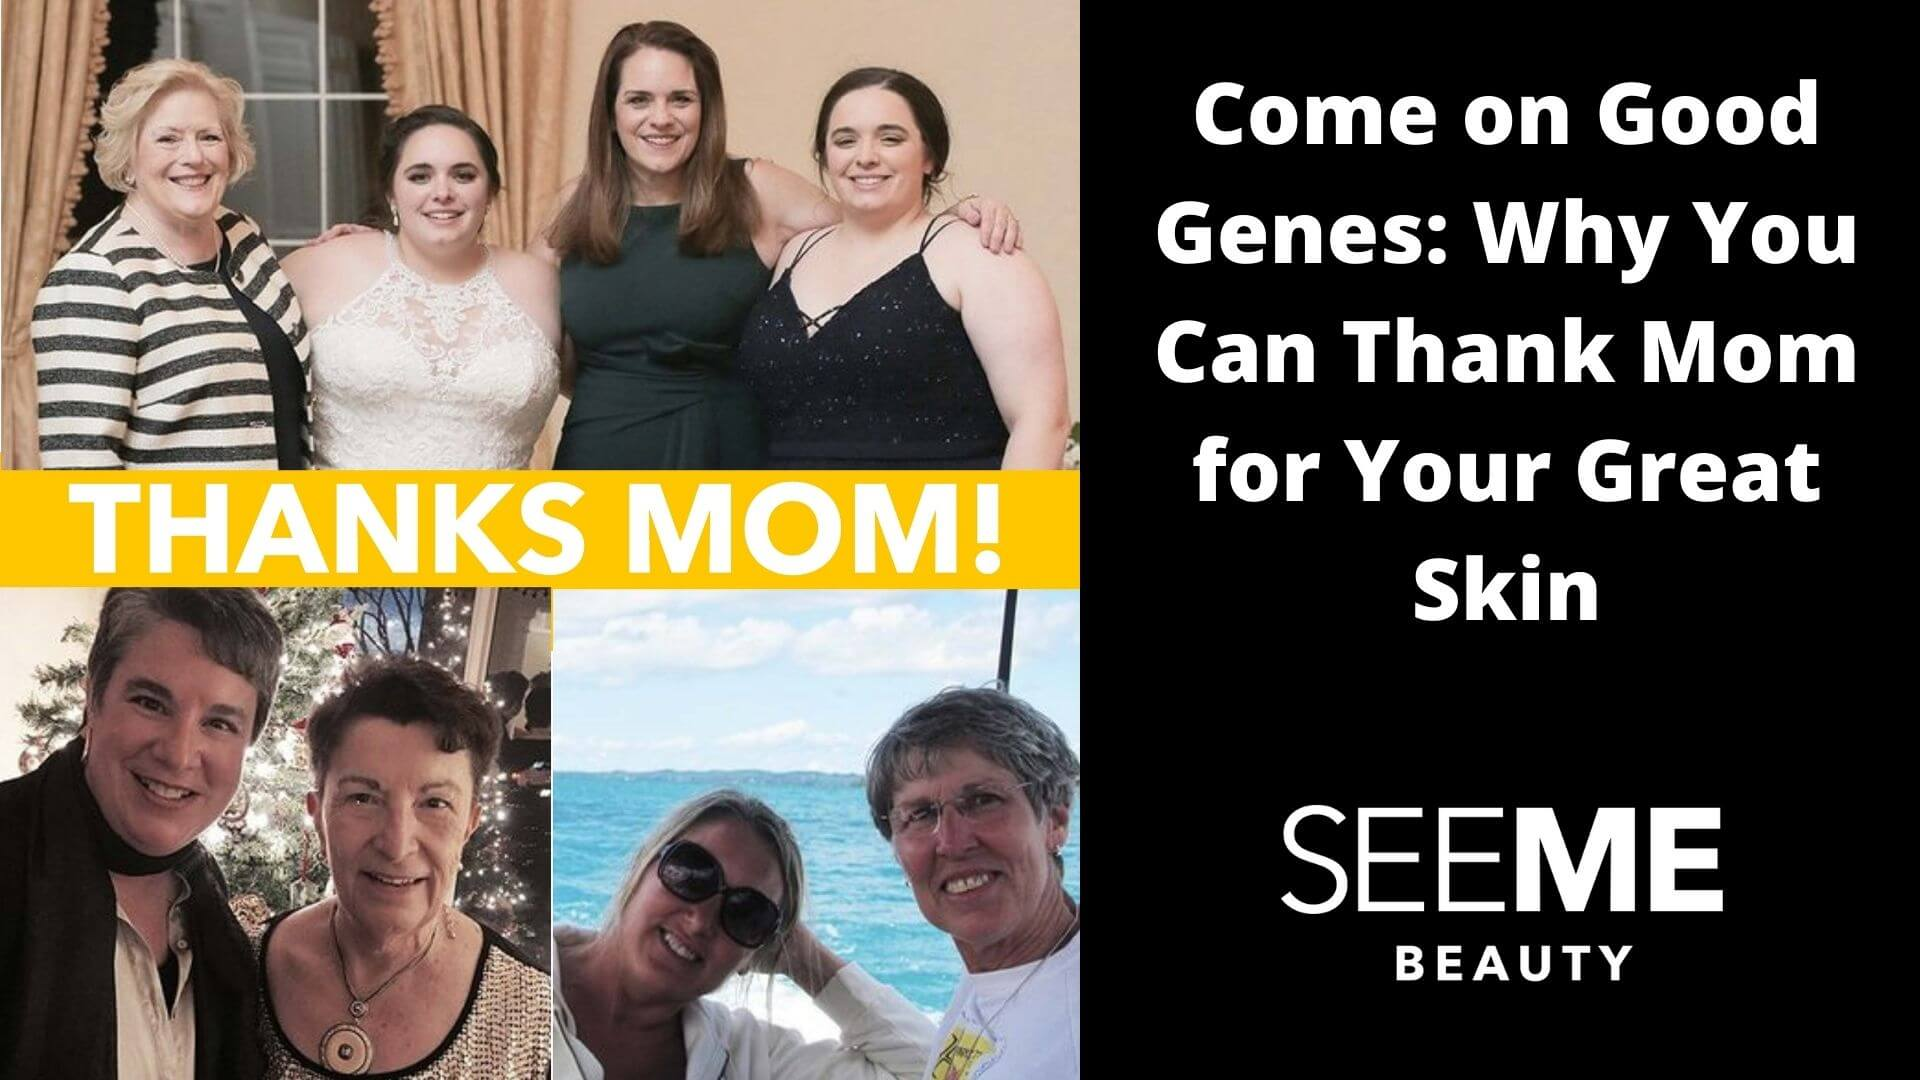 SeeMe Beauty Founders and their moms. Tiffanie with her twin daughters and her mom at a wedding. Alexis and her mom and Christi and her mom with a sea background. Como no good genes: why you can thank mom for your great skin.